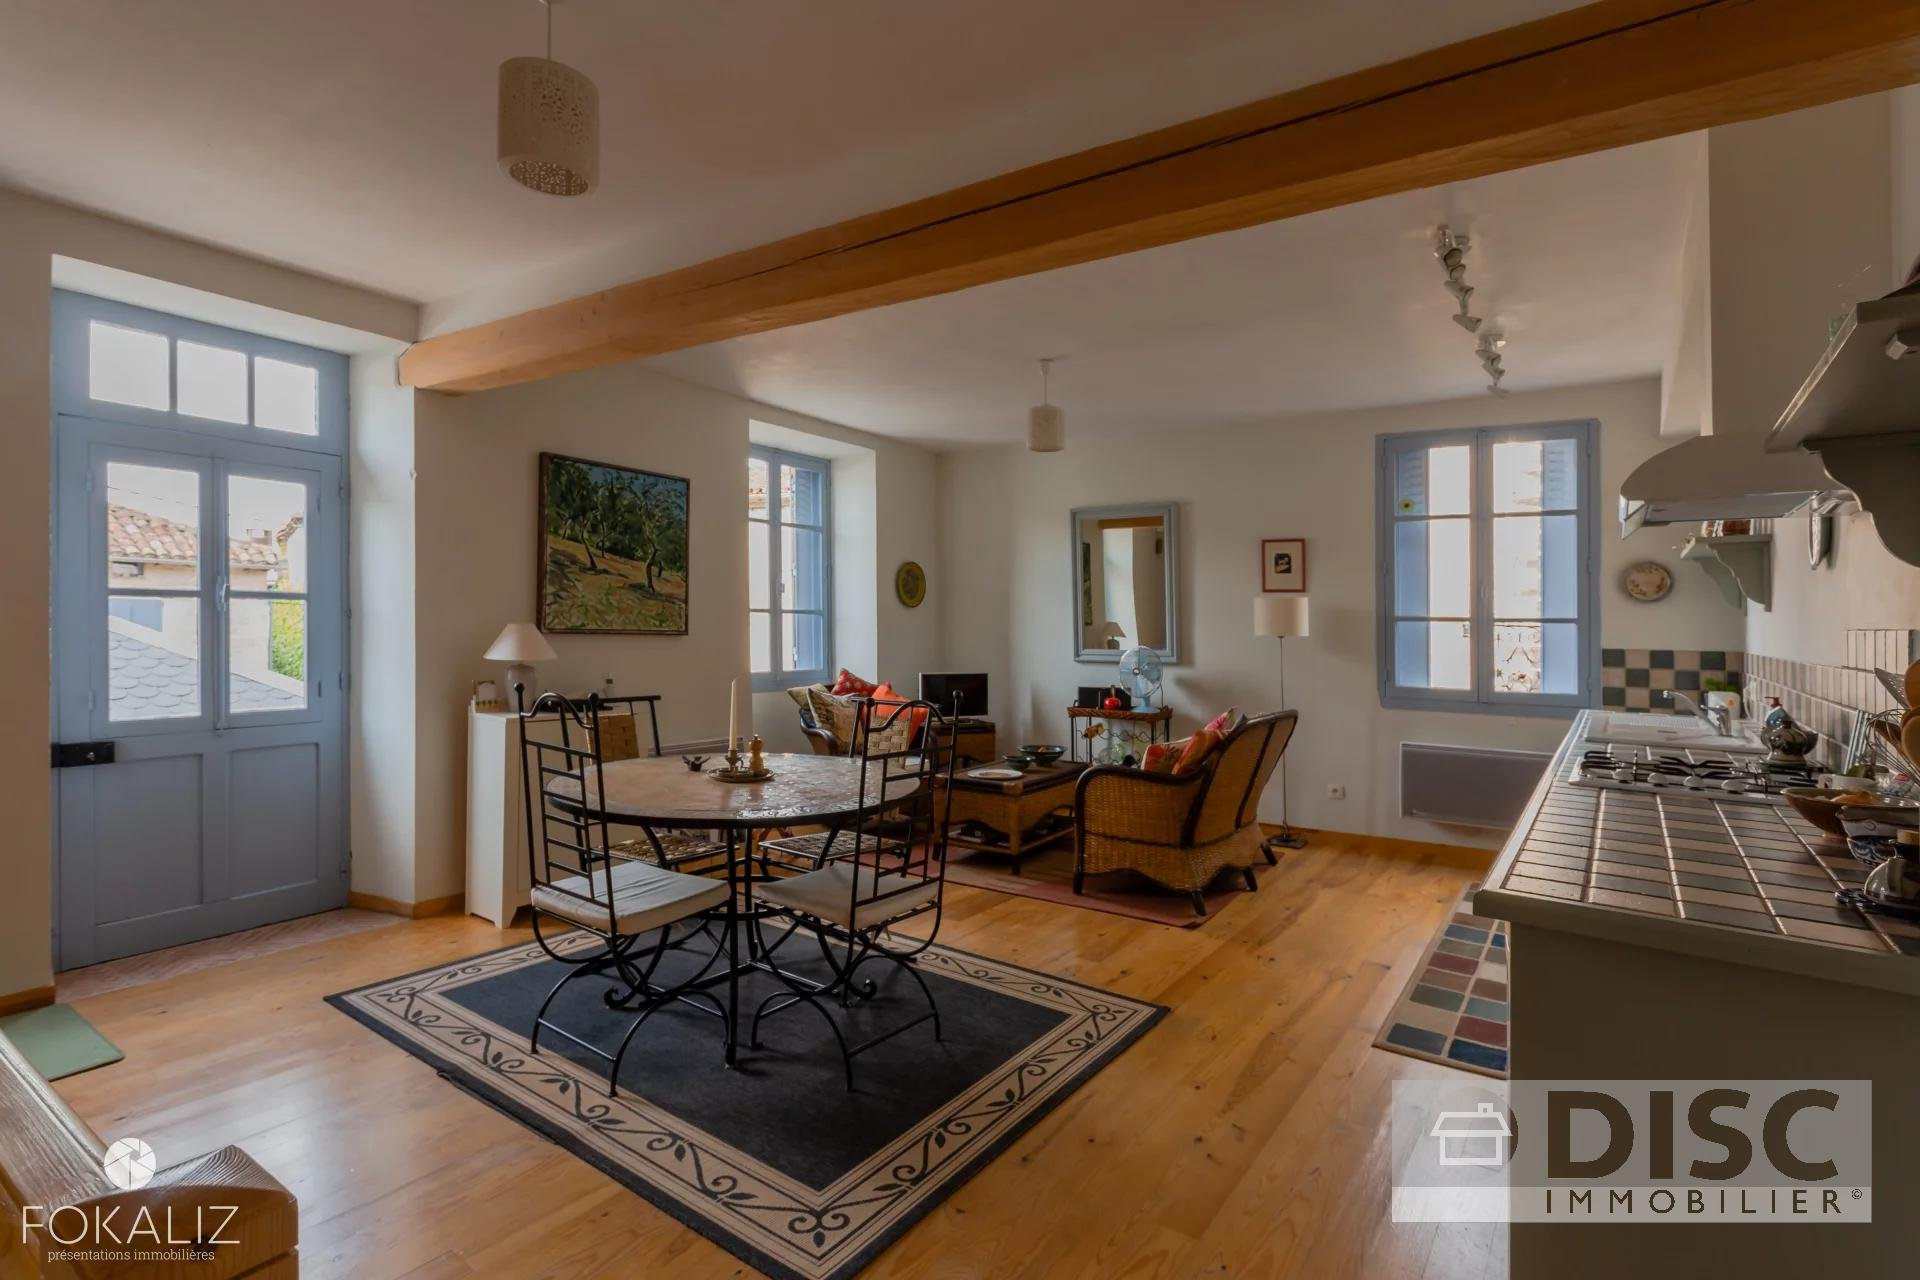 Beautiful village house completely renovated.